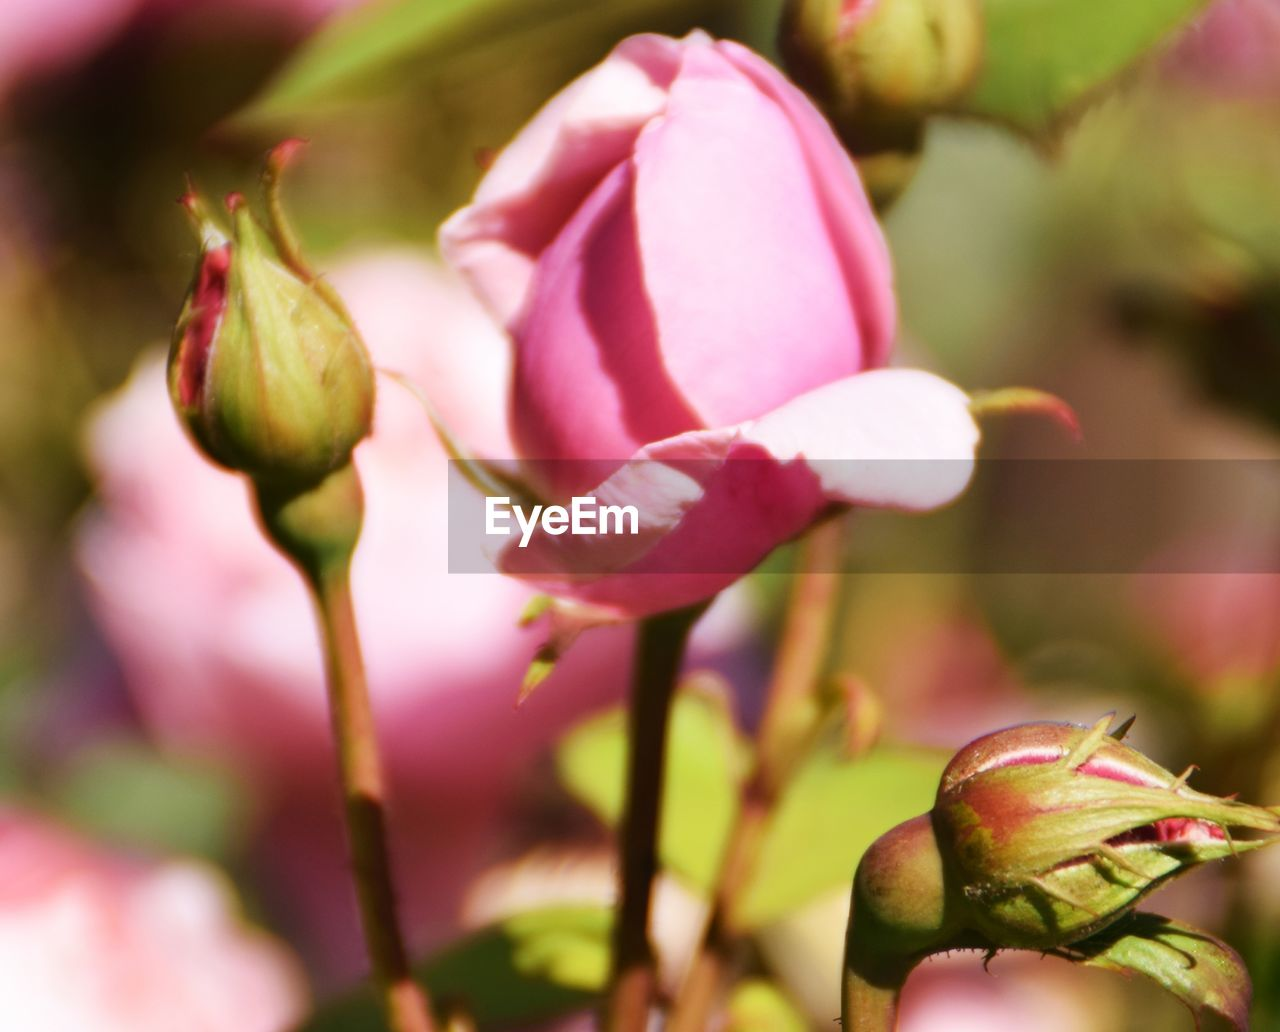 flower, flowering plant, plant, fragility, growth, freshness, vulnerability, close-up, beauty in nature, pink color, petal, bud, nature, day, focus on foreground, no people, flower head, inflorescence, beginnings, plant stem, outdoors, springtime, sepal